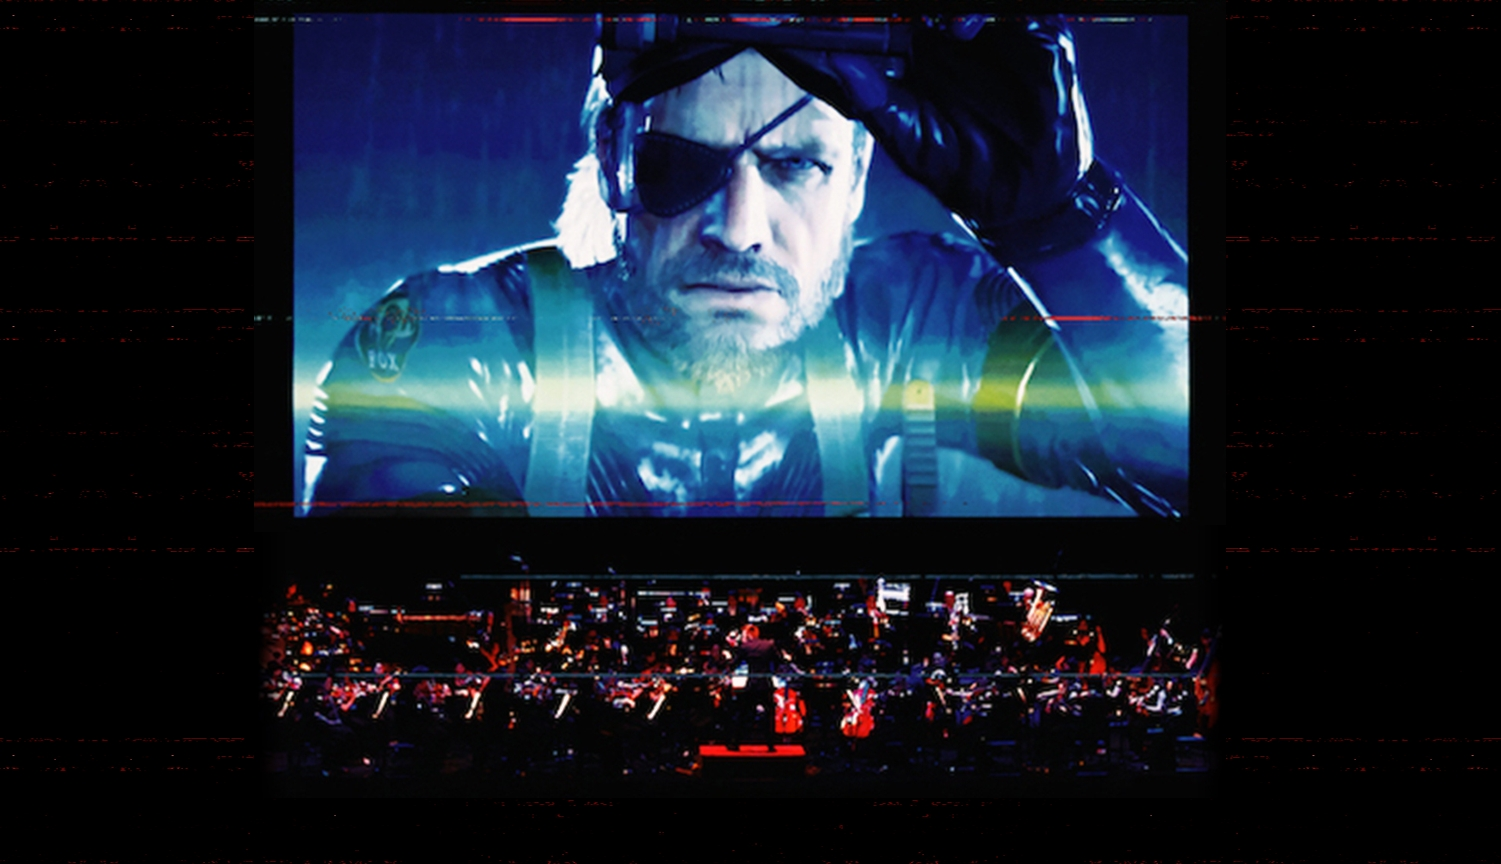 Konami Announces Live Streamed Metal Gear In Concert 2020 In Japan With In-Person Precautions